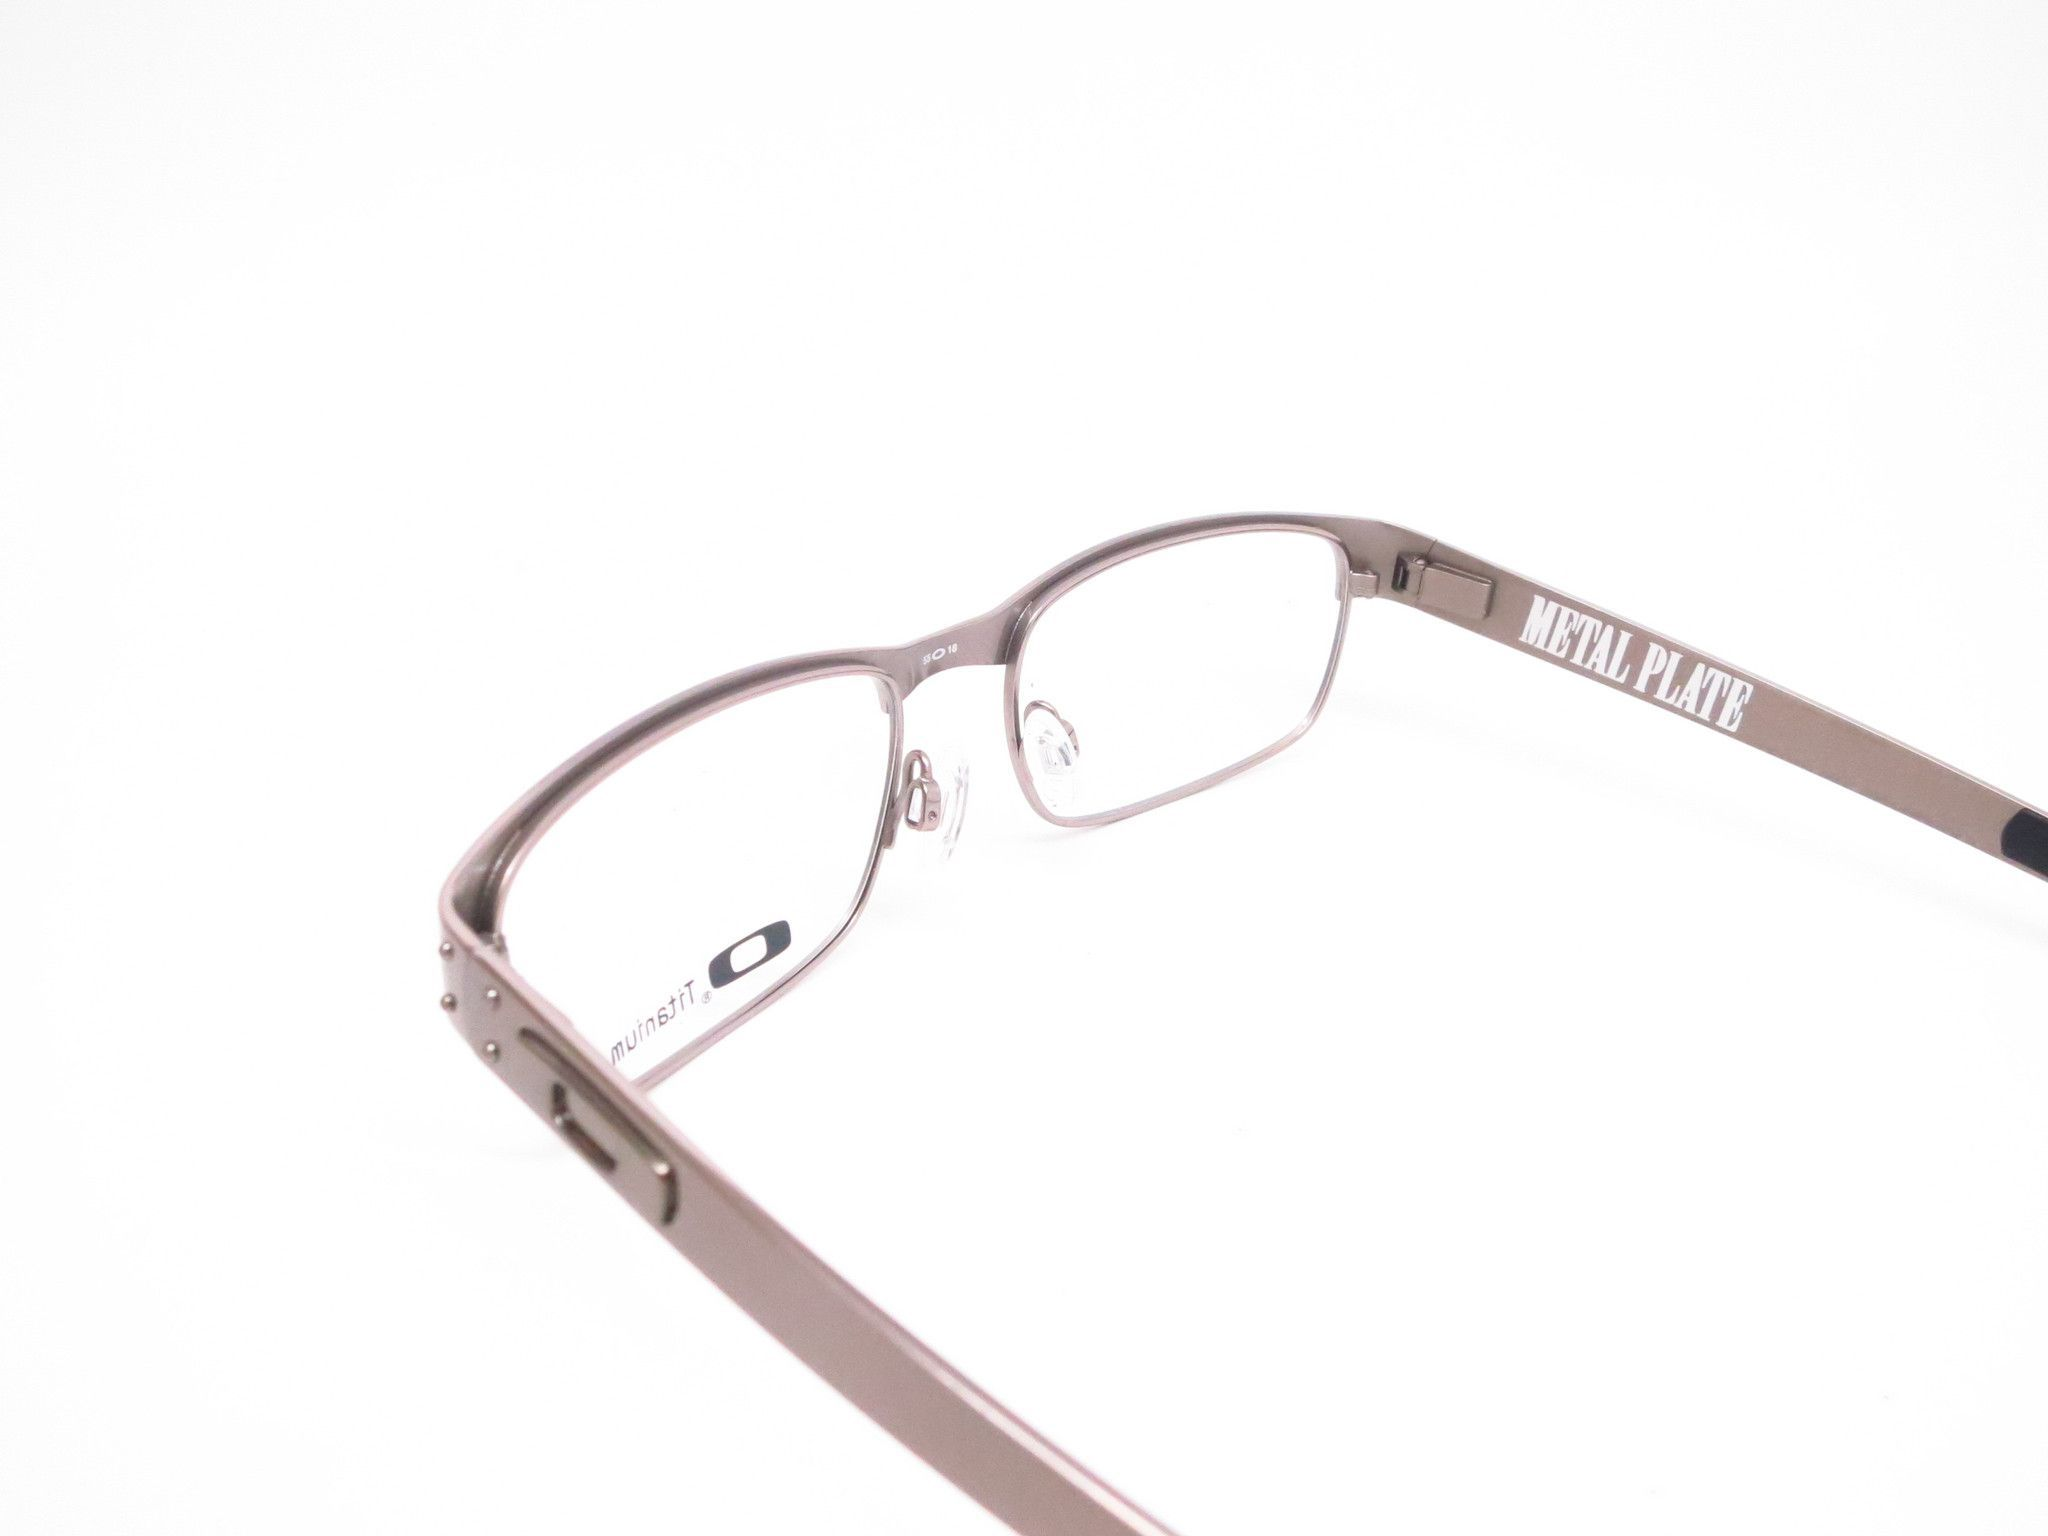 a39a7ff31904f Oakley Metal Plate OX5038-06 Eyeglasses Product Details Brand Name   Oakley  Model Number